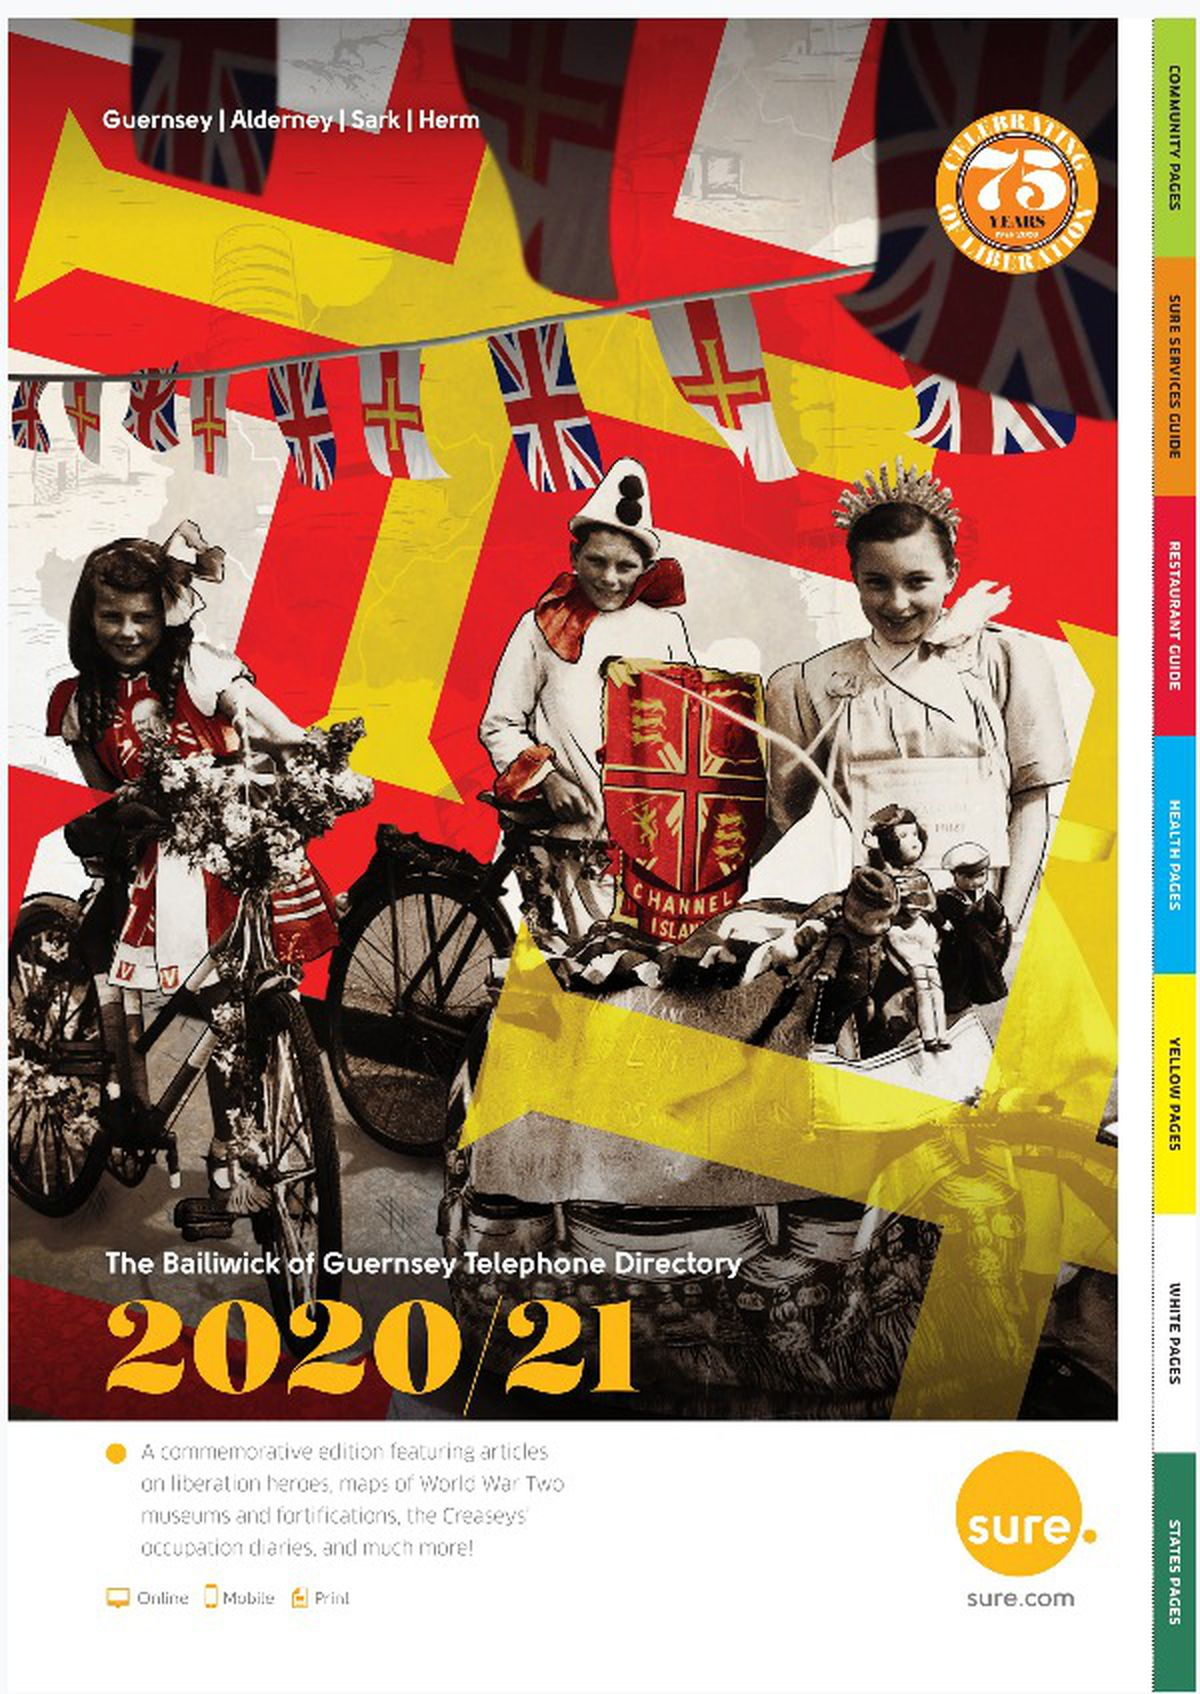 The Sure 2020/21 directory is available from Monday.